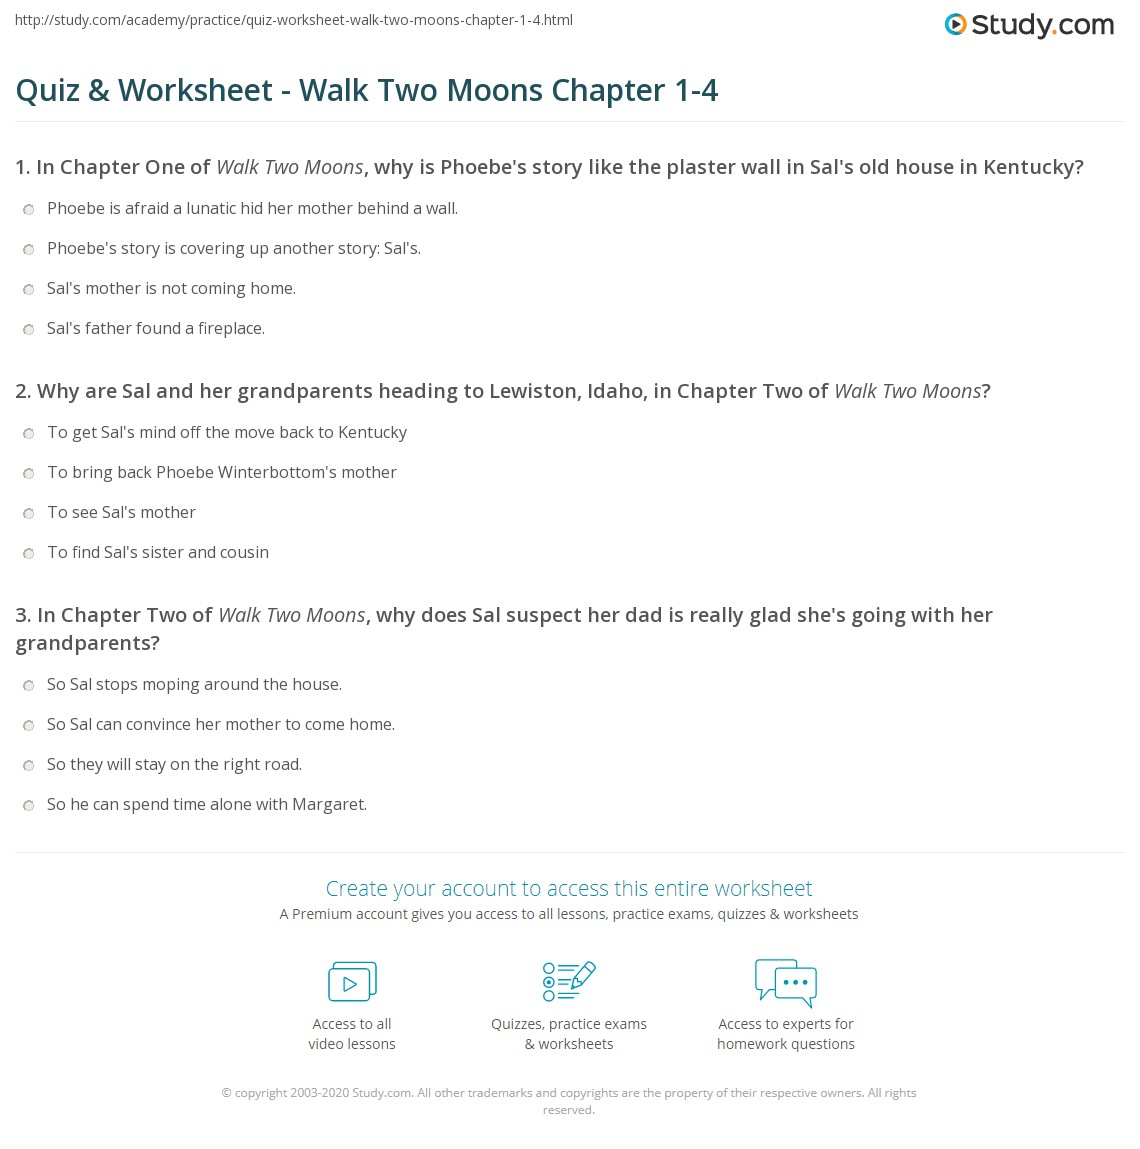 walk two moons worksheets rringband quiz worksheet walk two moons chapter 1 4 study com